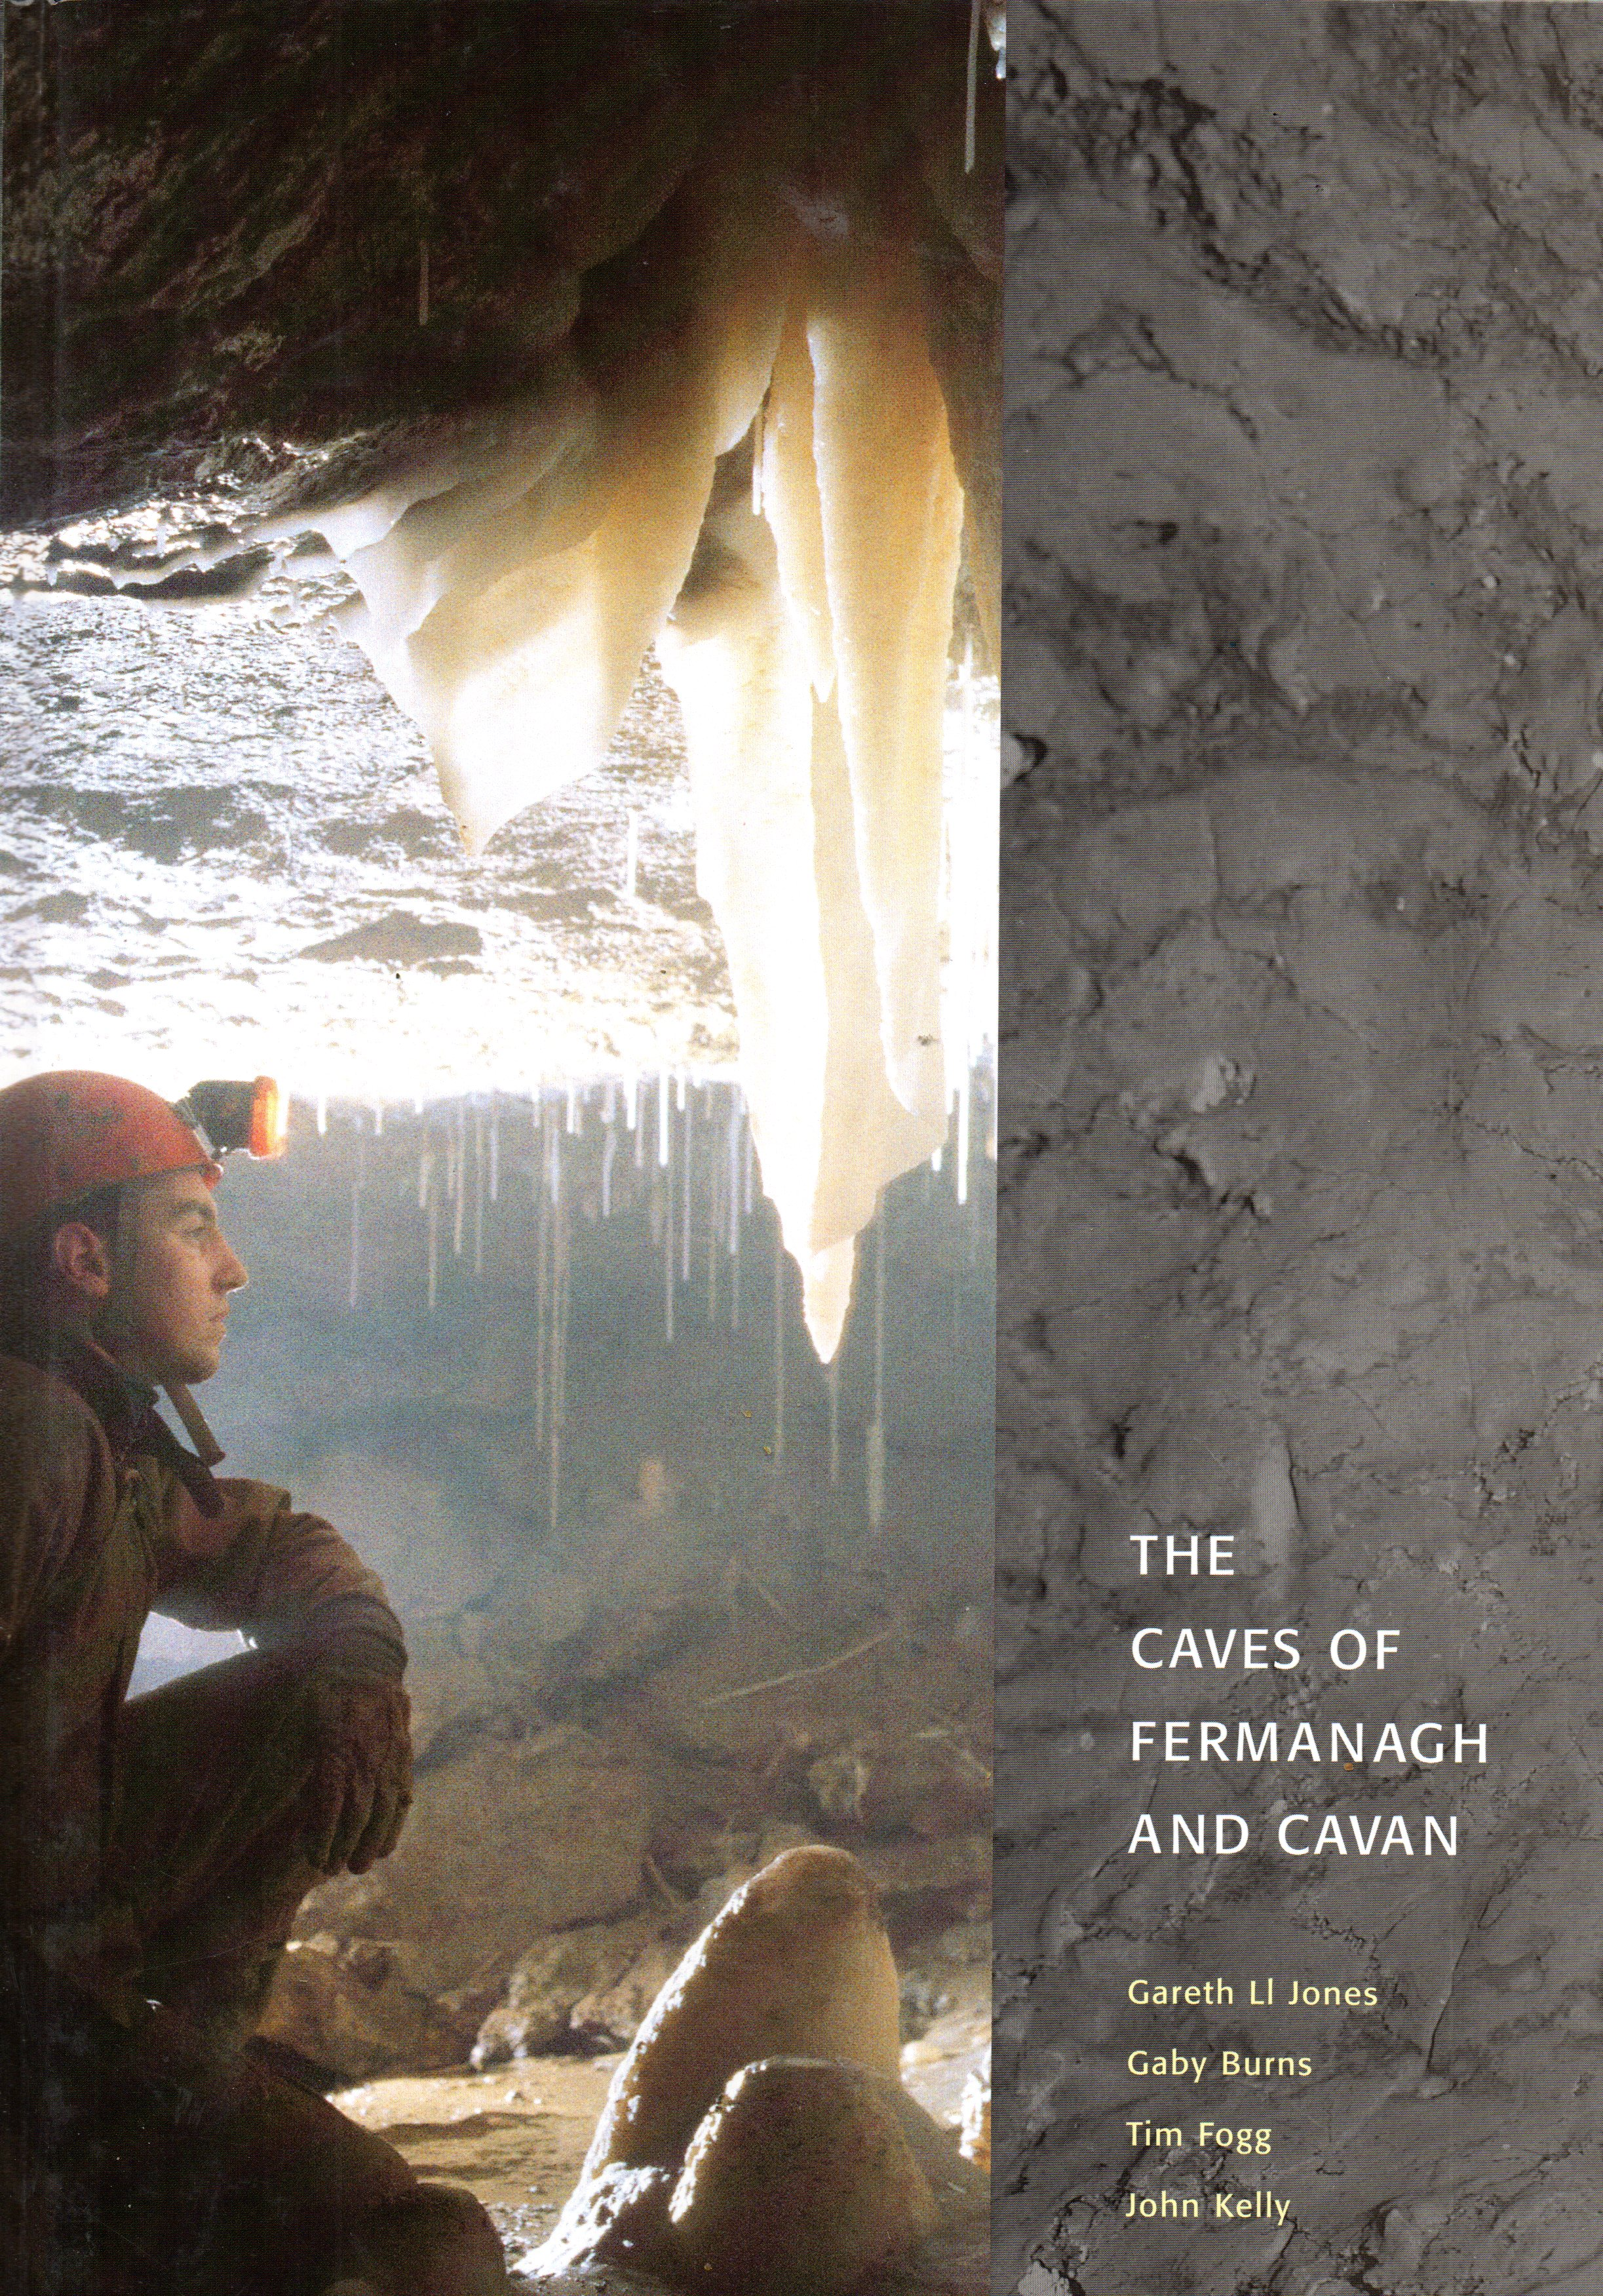 [USED] The Caves of Fermanagh and Cavan